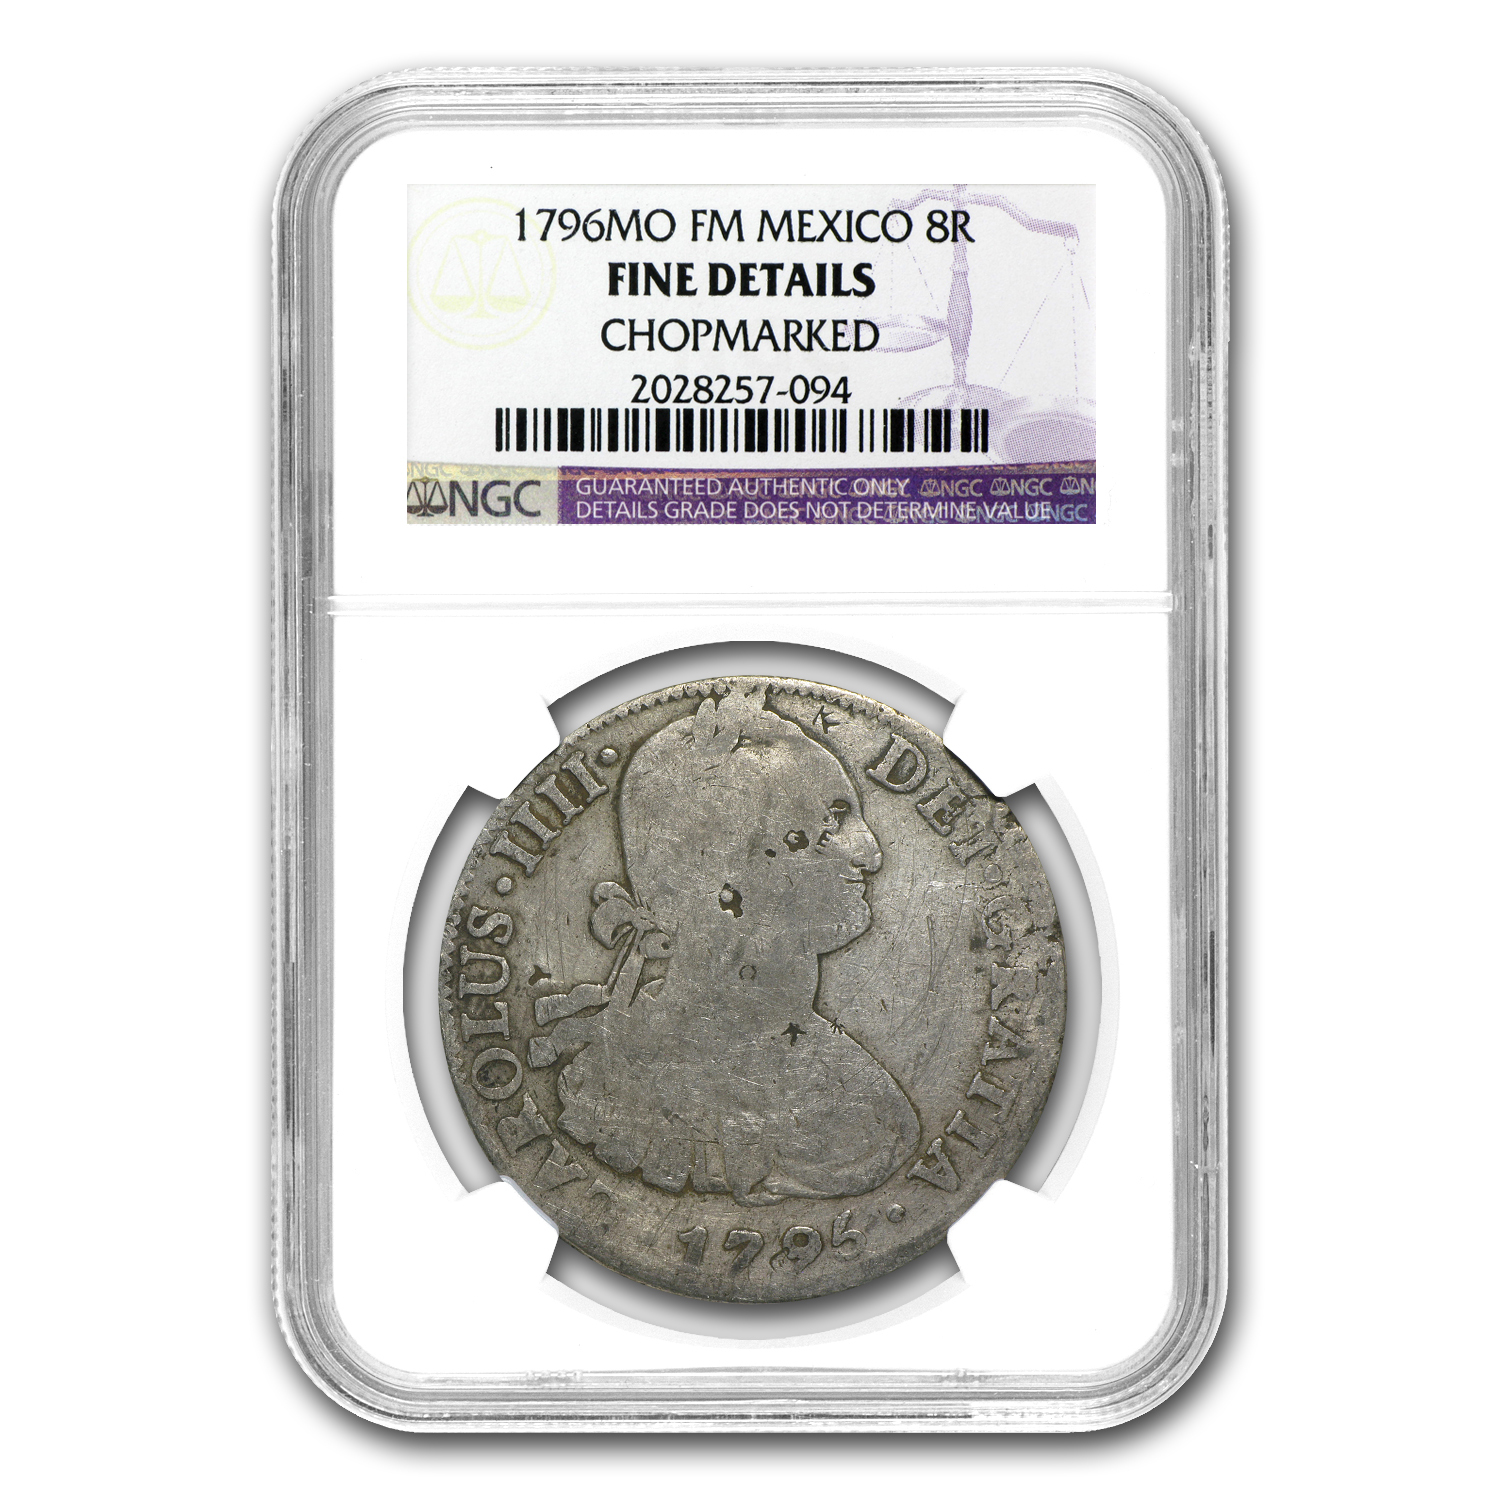 1796 Mexico Silver 8 Reales Fine Details NGC (Chopmarked)